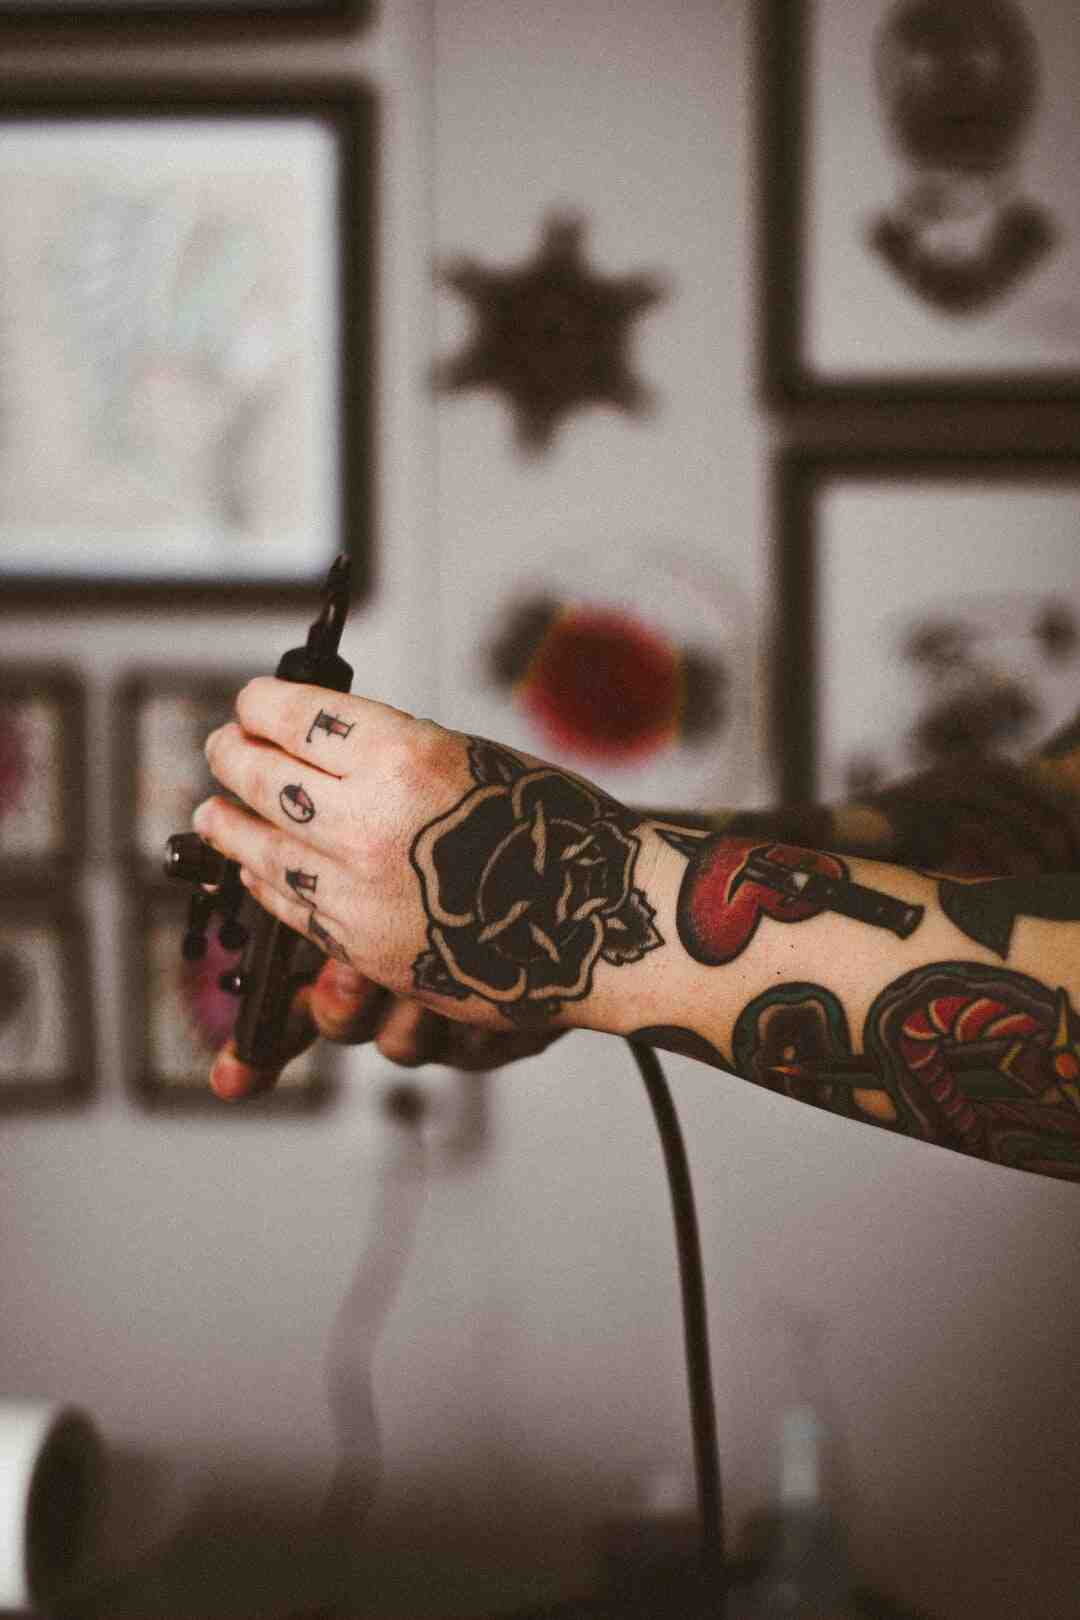 Can you use Sharpie ink for stick and poke?